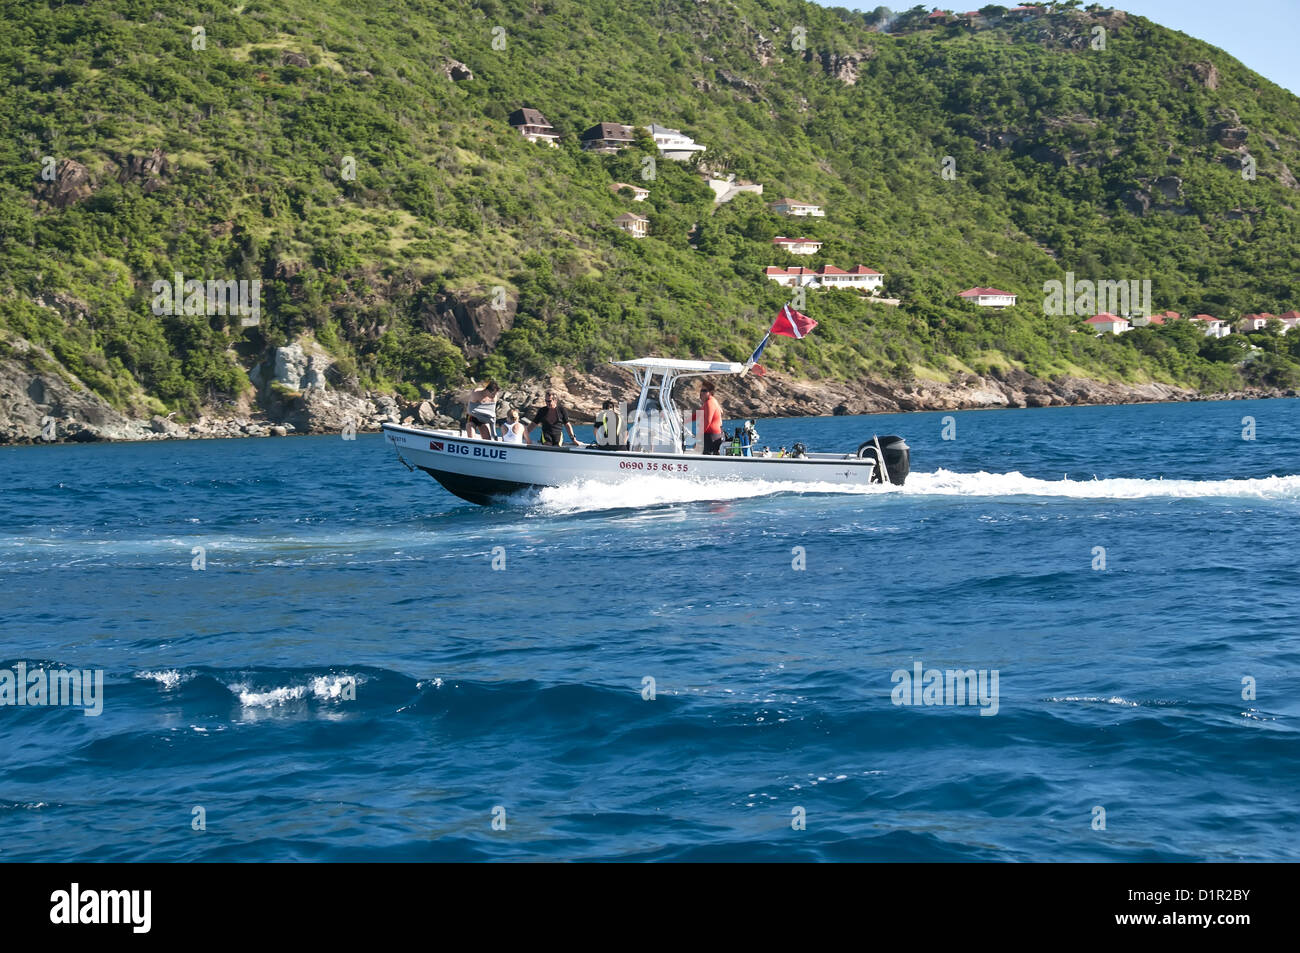 Scuba diving boat with dive flag speeding toward dive site, Saint Barthelemy - Stock Image